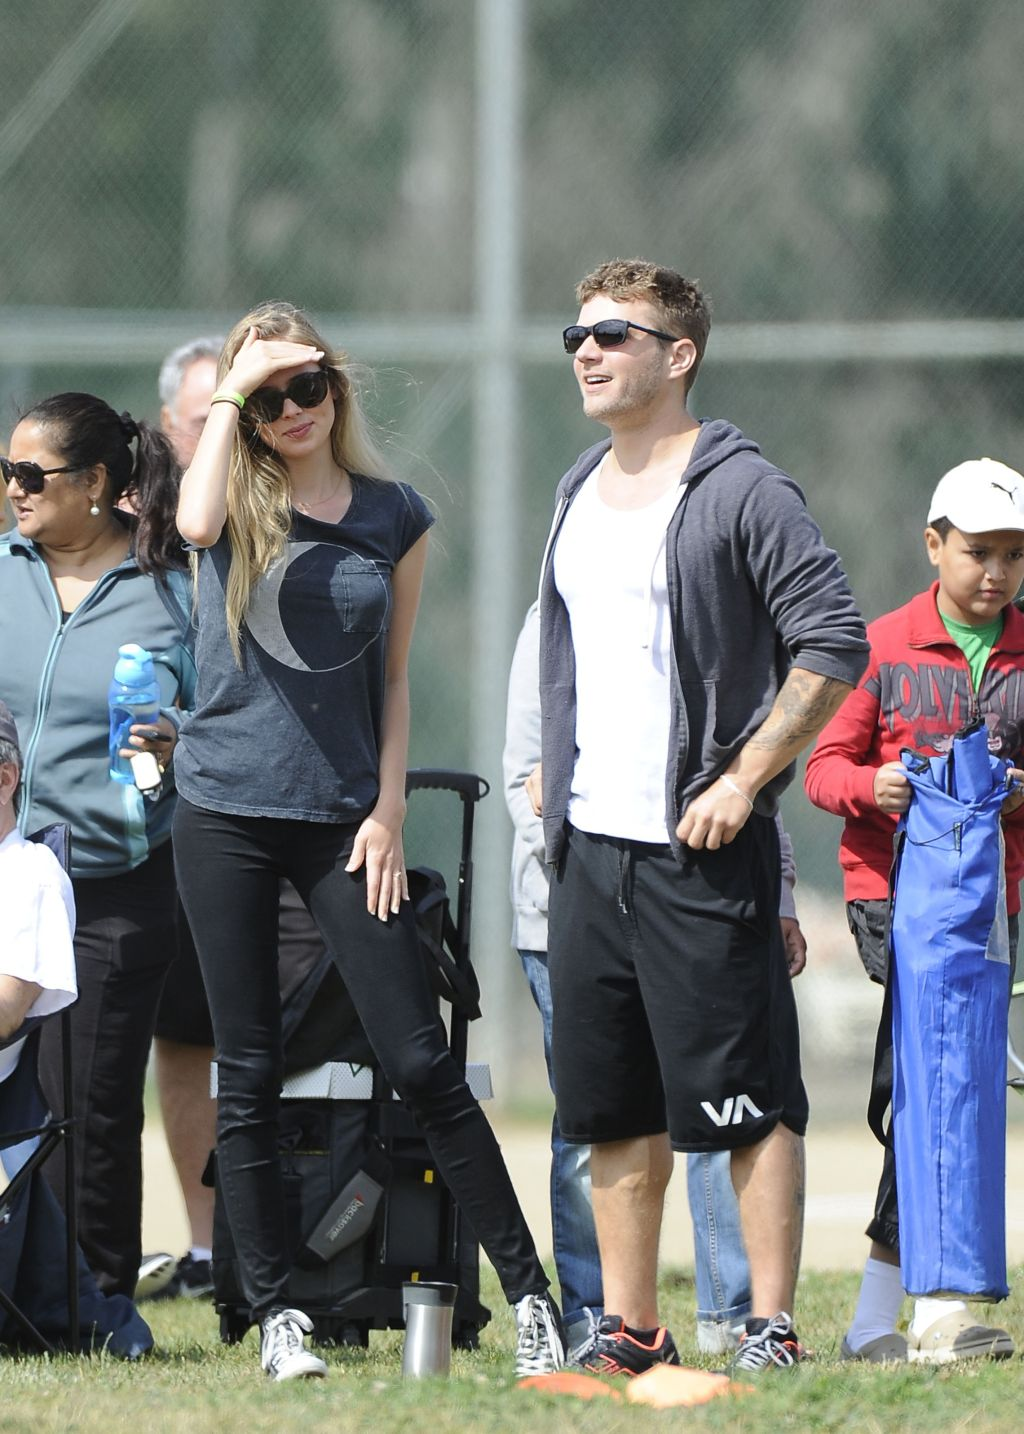 Ryan Phillippe and fiancée Paulina Slagter